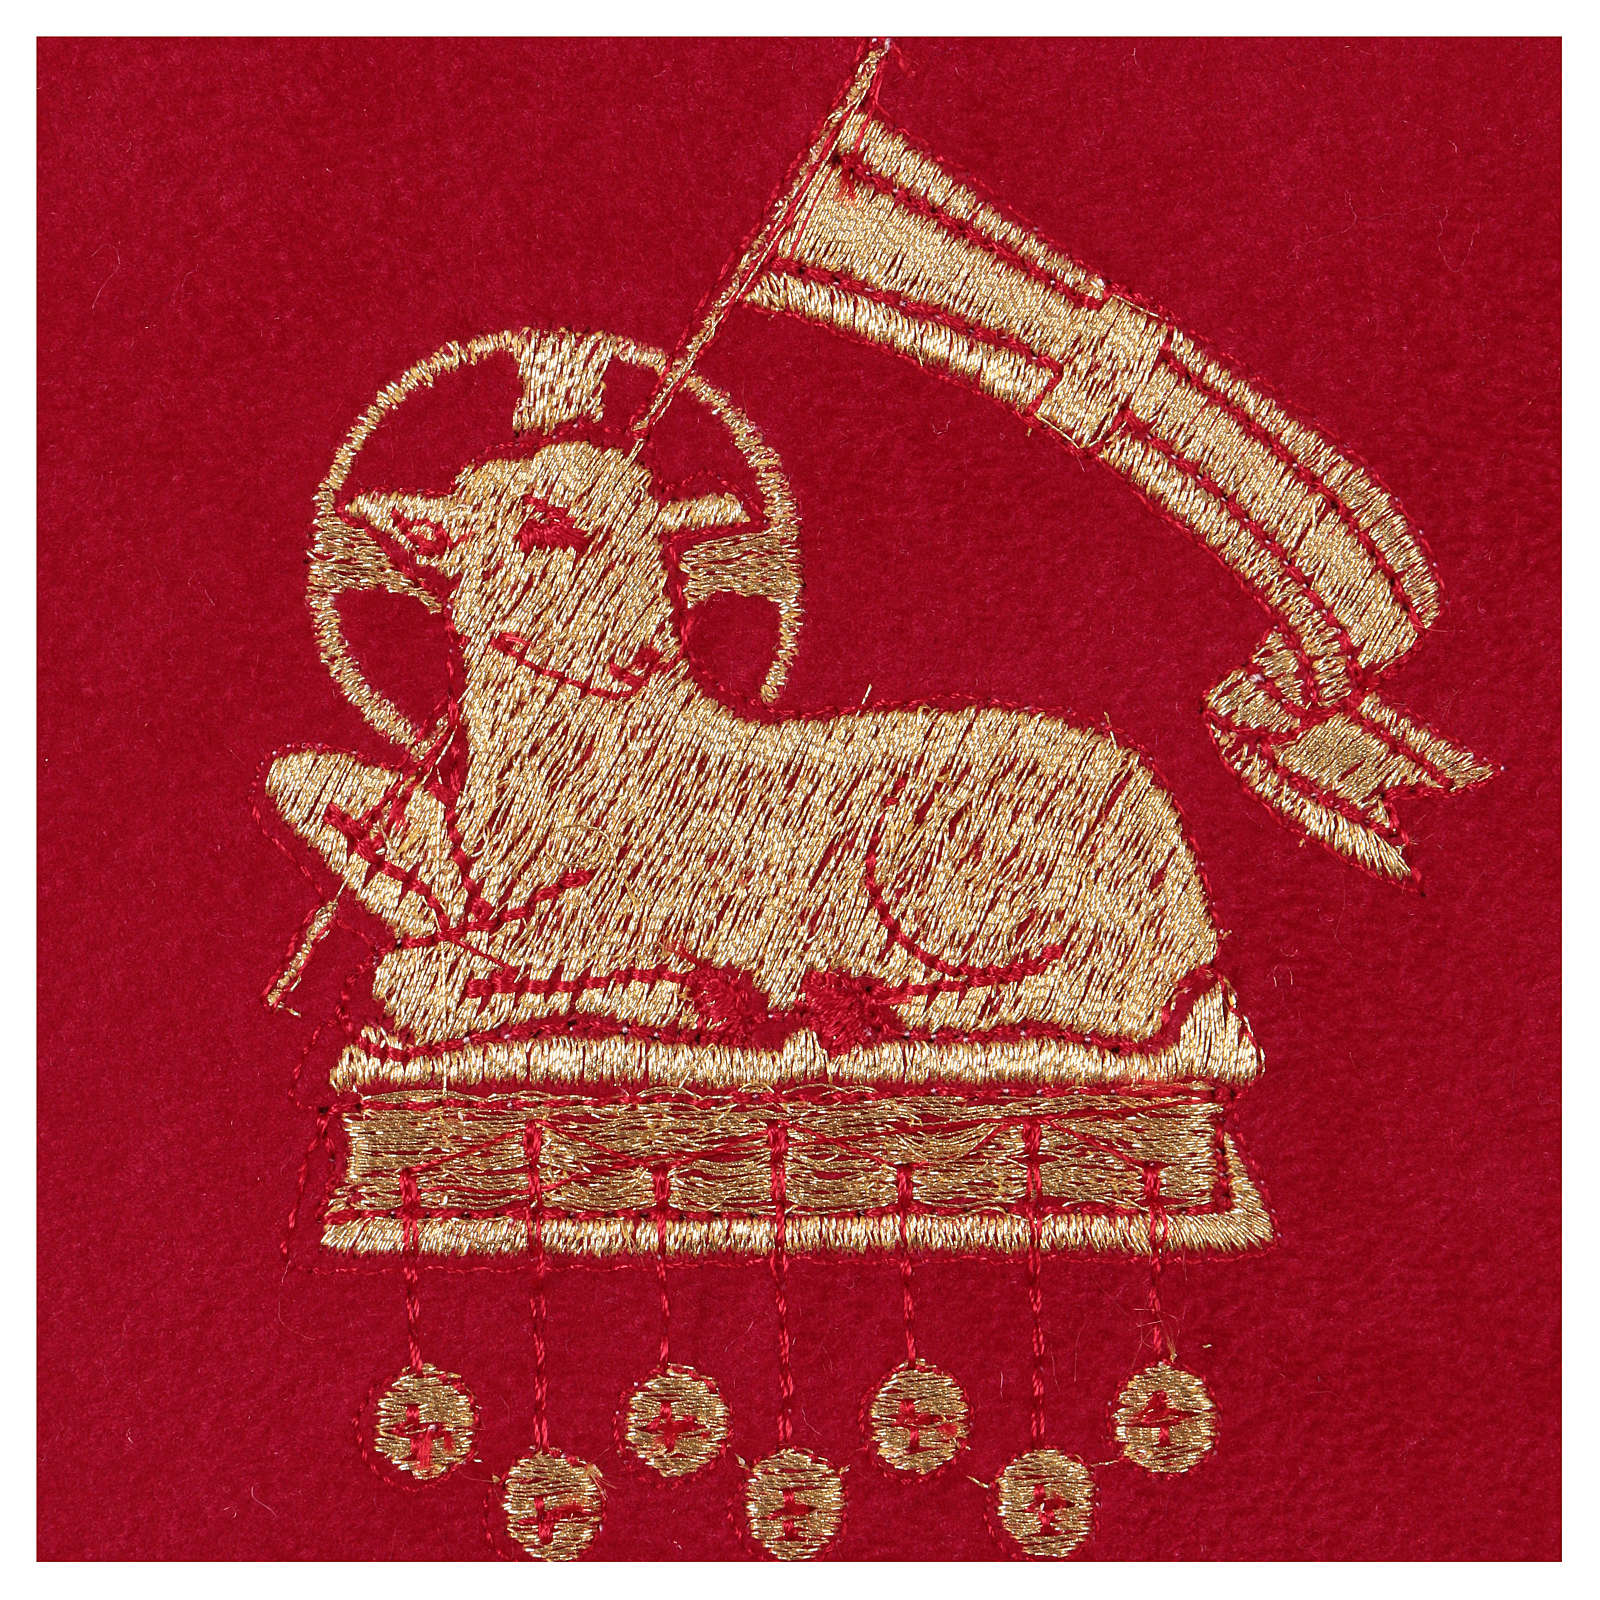 Chalice veil (pall) with lamb embroidery on red fabric 4